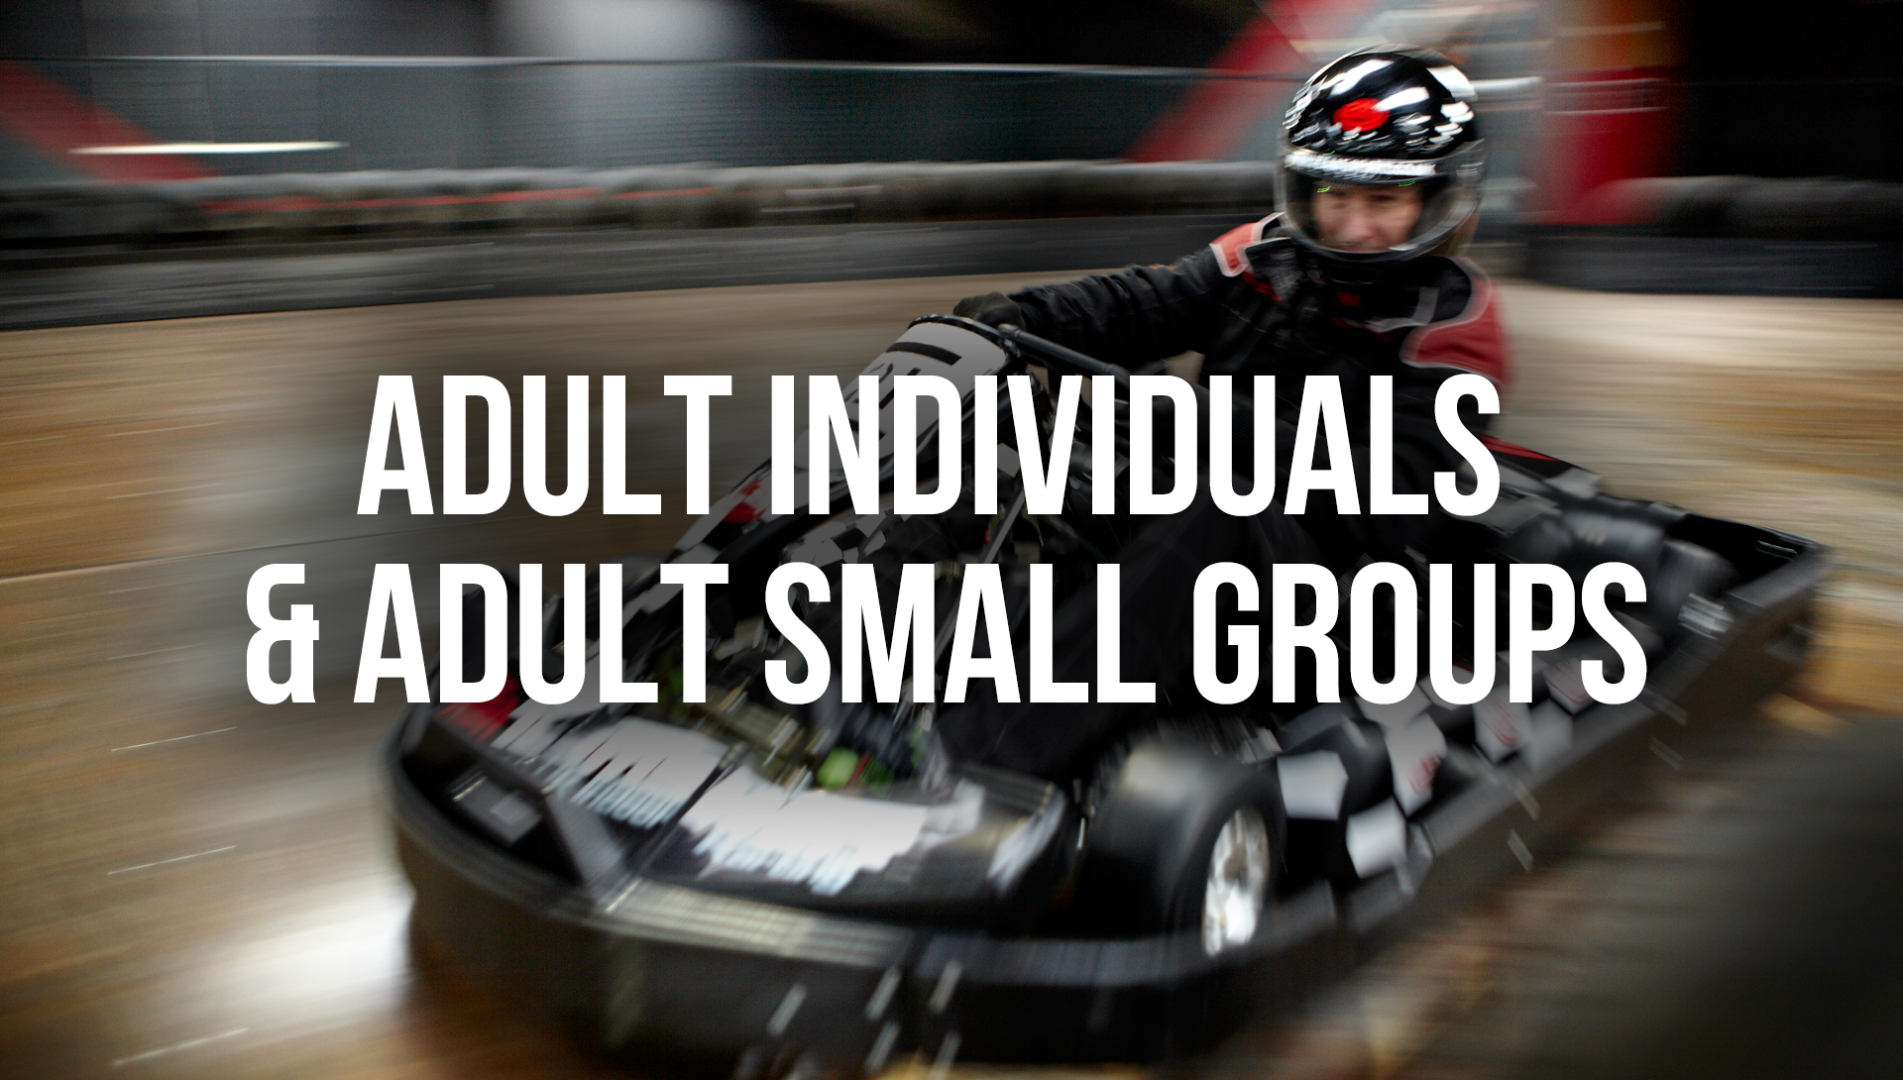 Go Kart Racing Events - Adult Individuals & Adult Small Groups